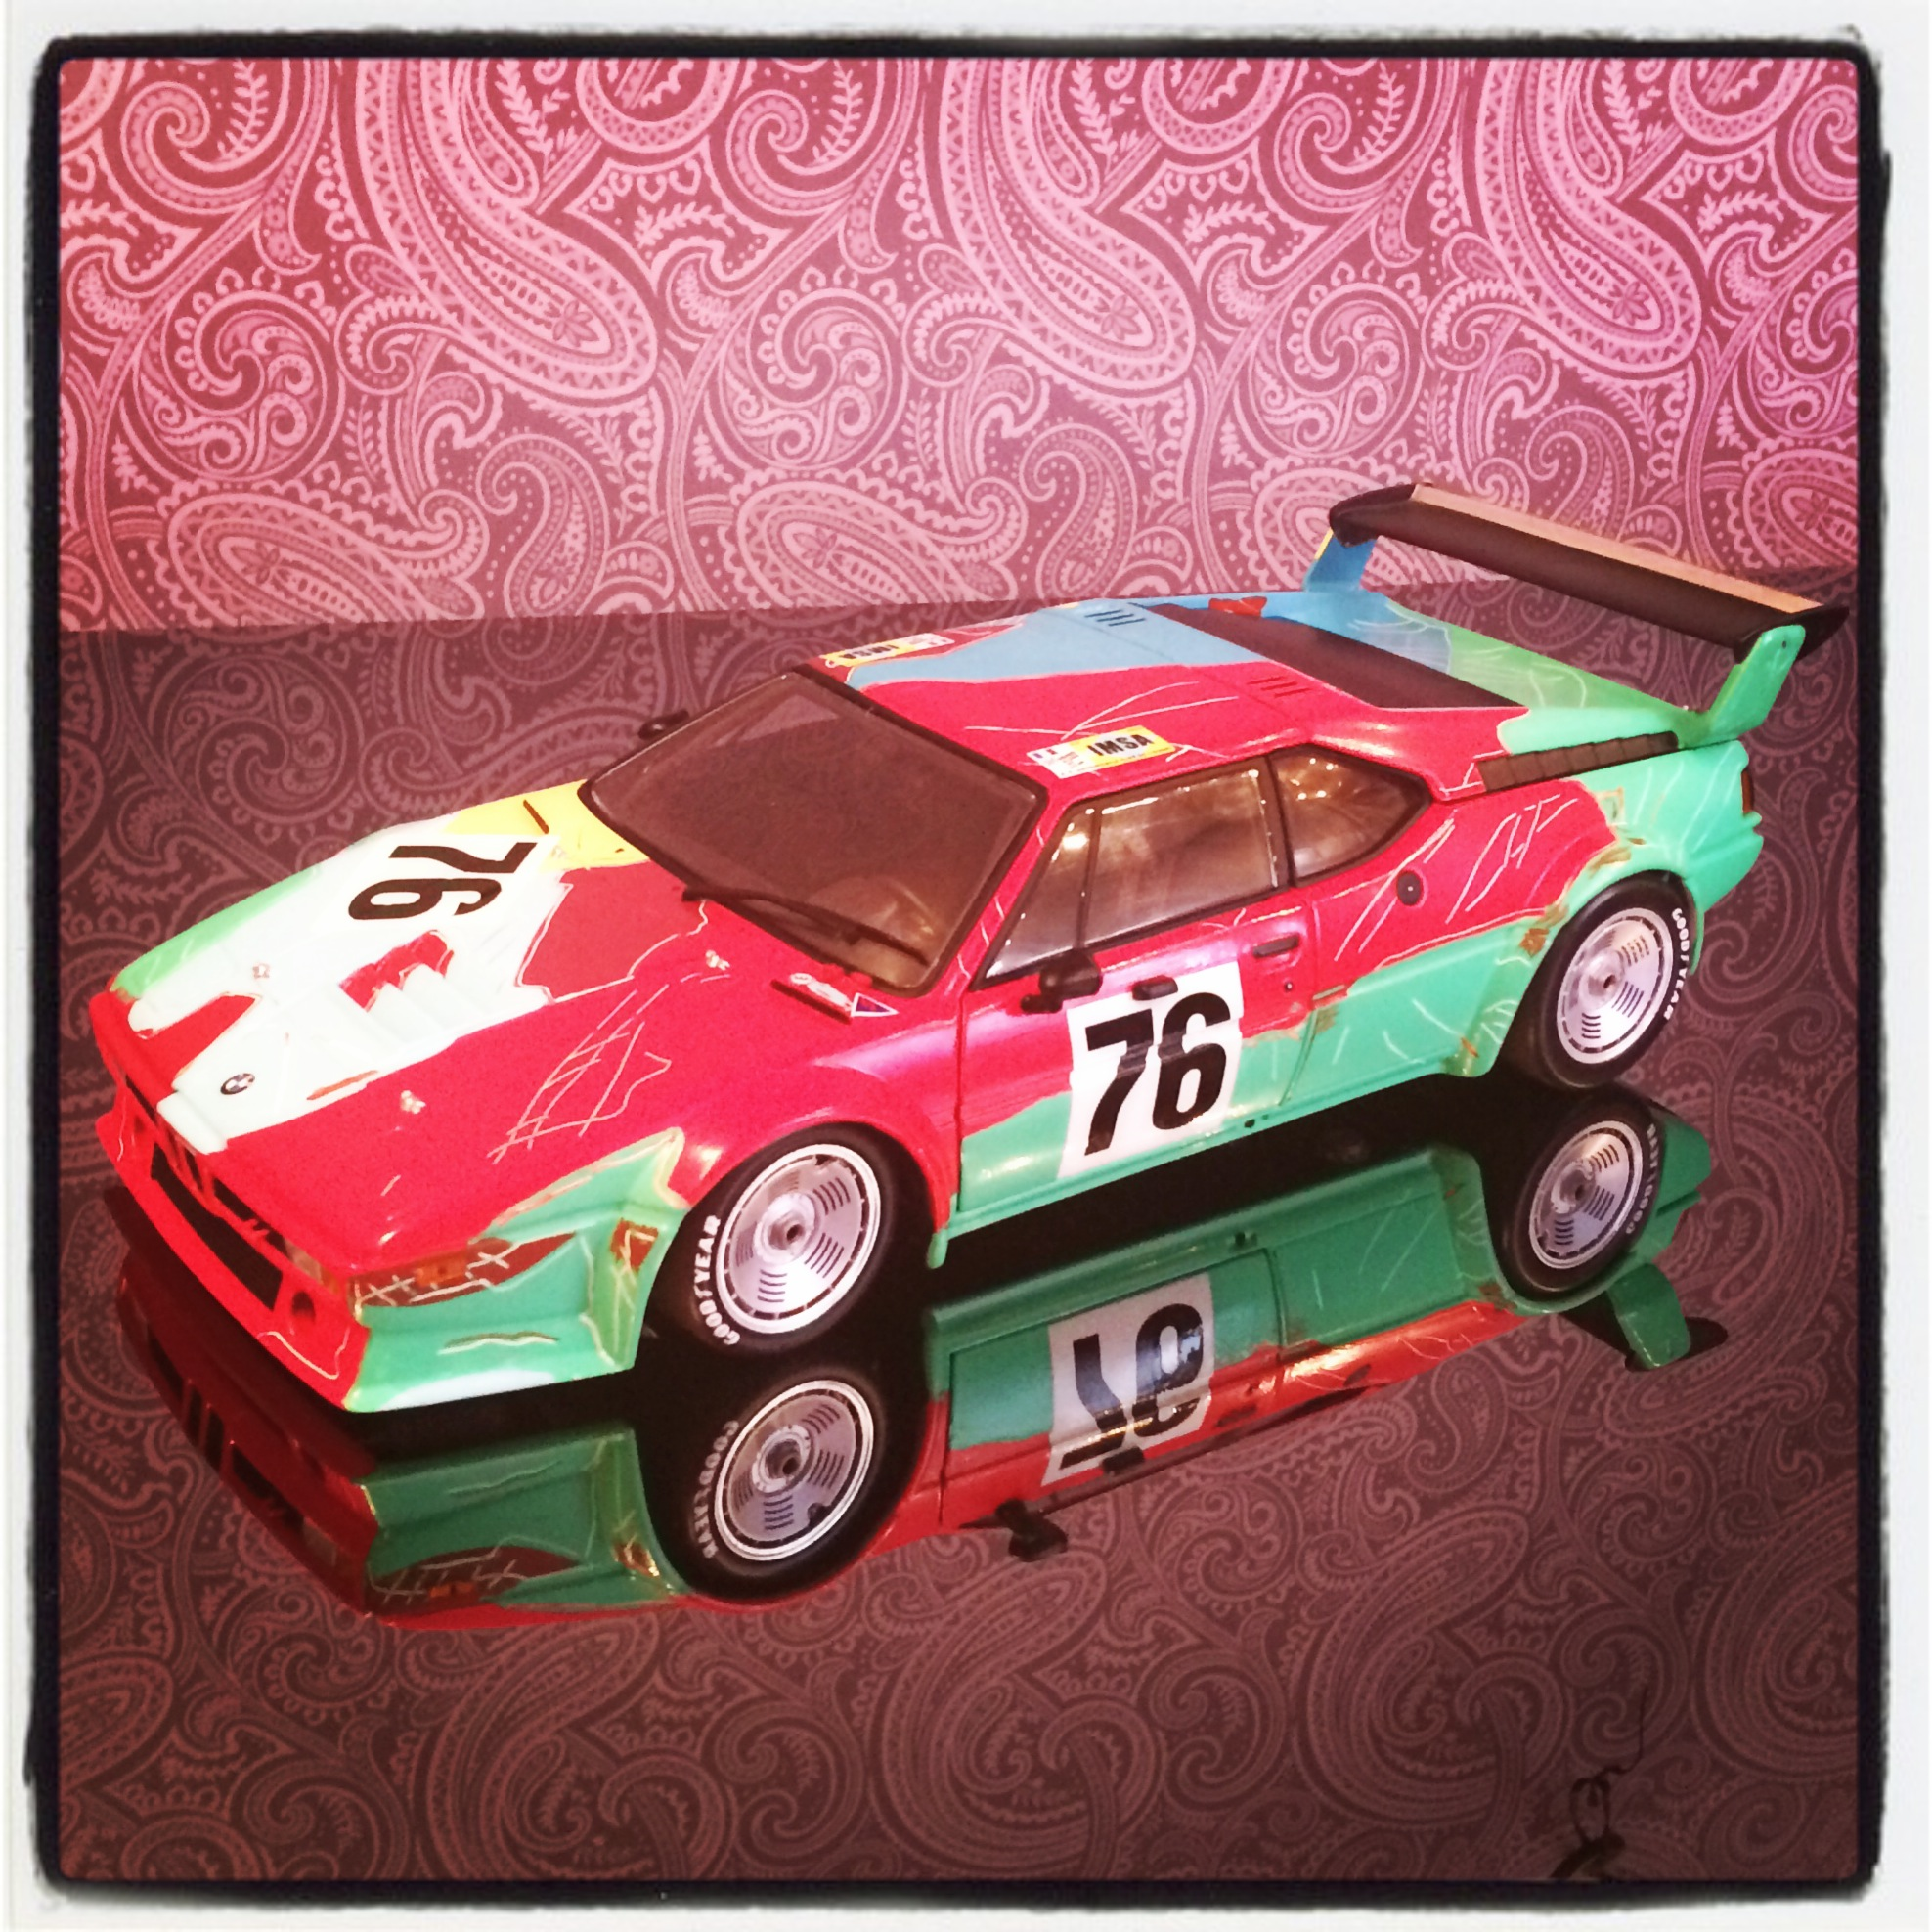 BMW M1 group 4, Andy Warhol, 1979 (minichamps)